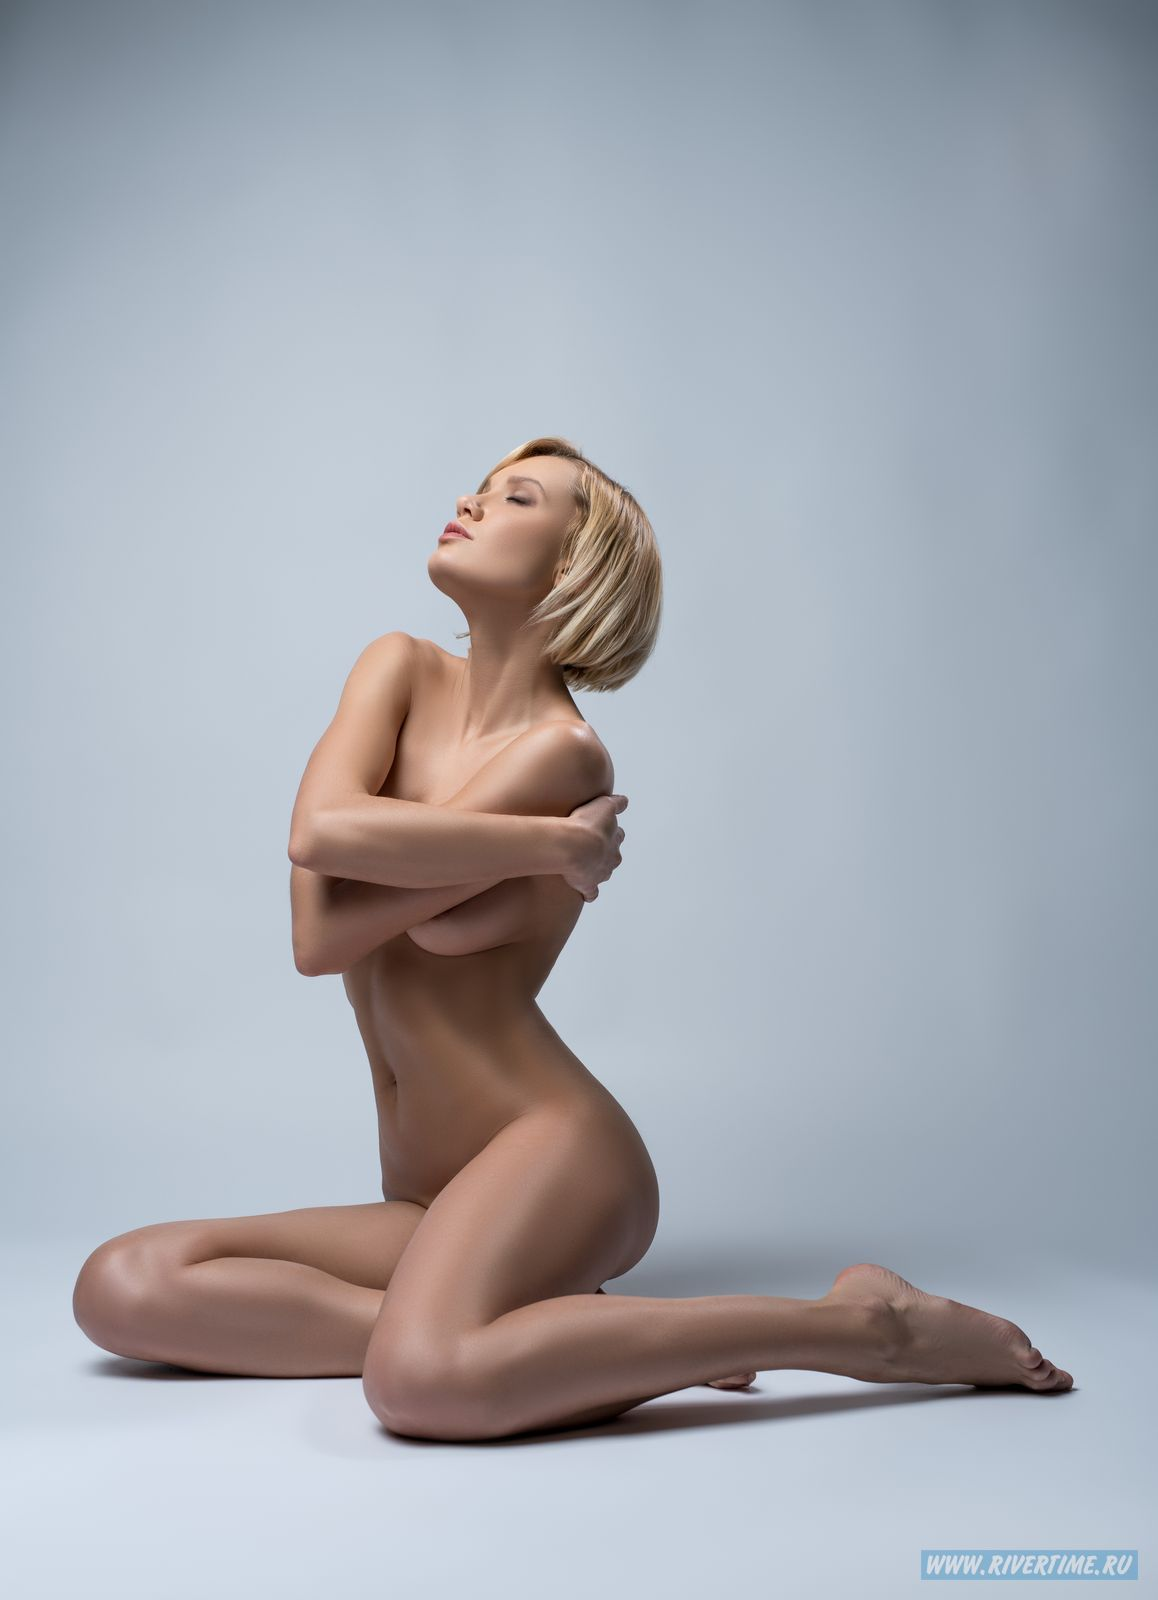 Image of naked blonde posing sensually at camera